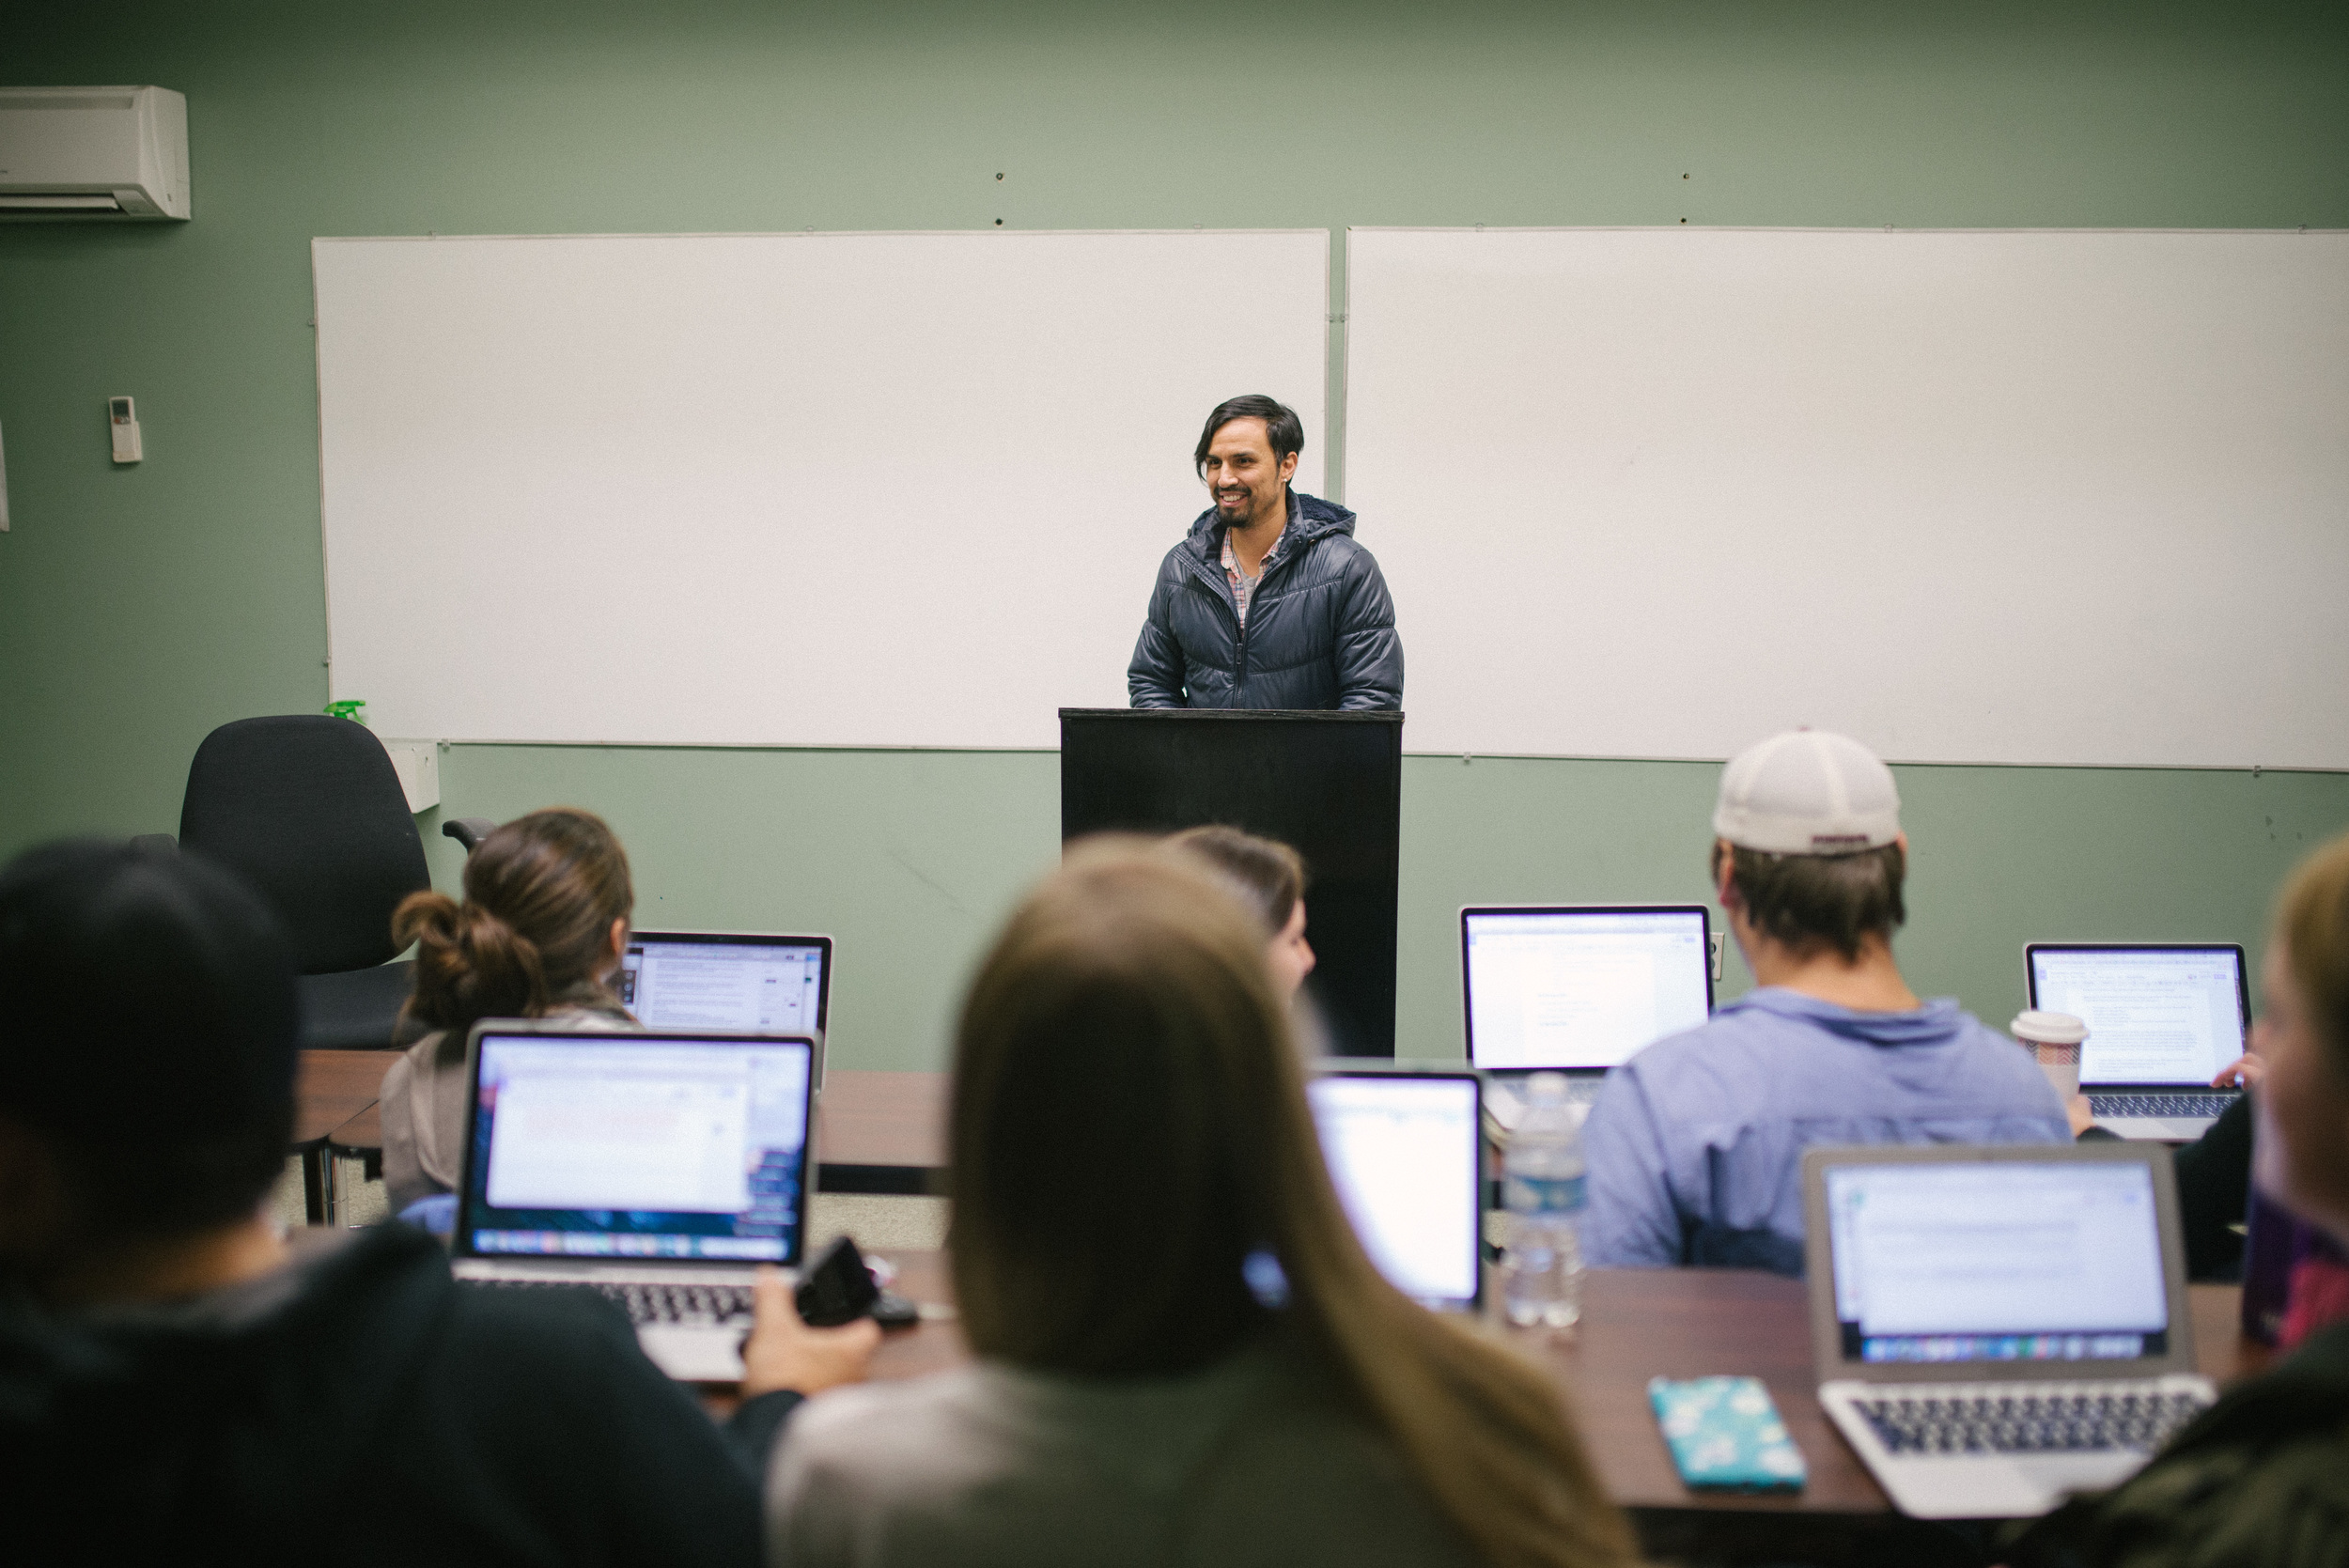 Gregg Garner taught one of our continued education classes last semester. The class was held at night so that people who work full-time during the day could attend.